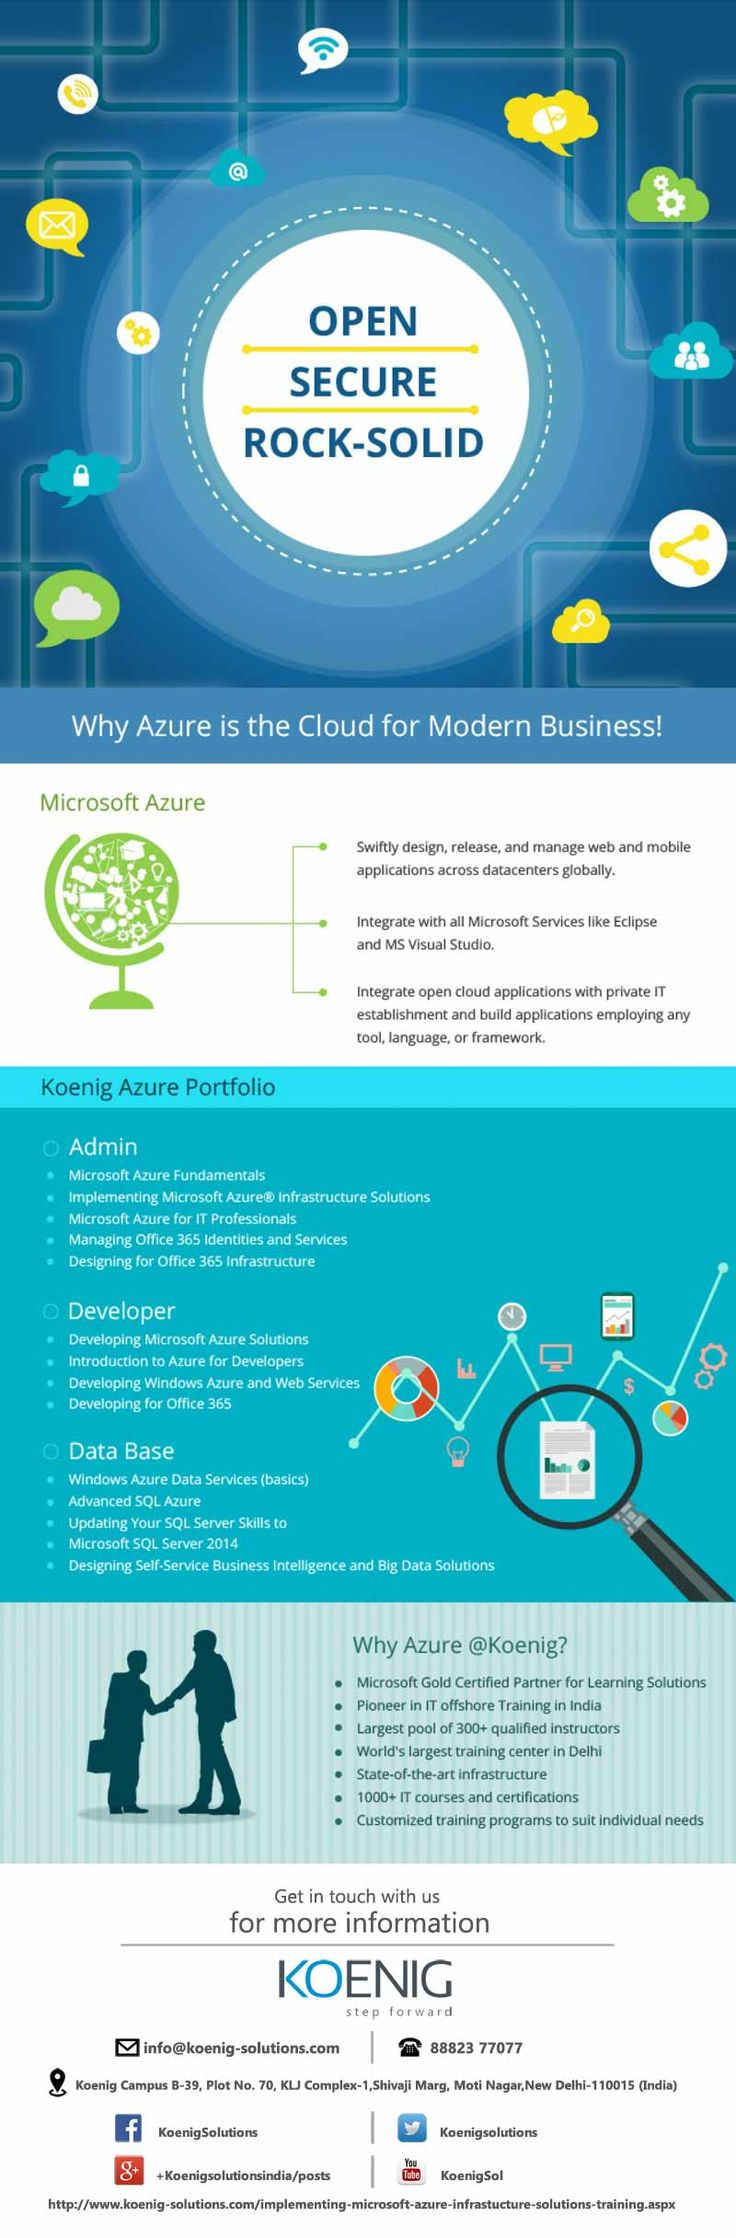 In this infographics all Microsoft Azure technical topics including Azure Virtual Machines, virtual networks, and platform as a service (PaaS) implementation for IT Pros, including using PowerShell for automation and management, using Active Directory, migrating from on-premises to cloud infrastructure, and important licensing information. To Know More visit official page - http://www.koenig-solutions.com/implementing-microsoft-azure-infrastucture-solutions-training.aspx